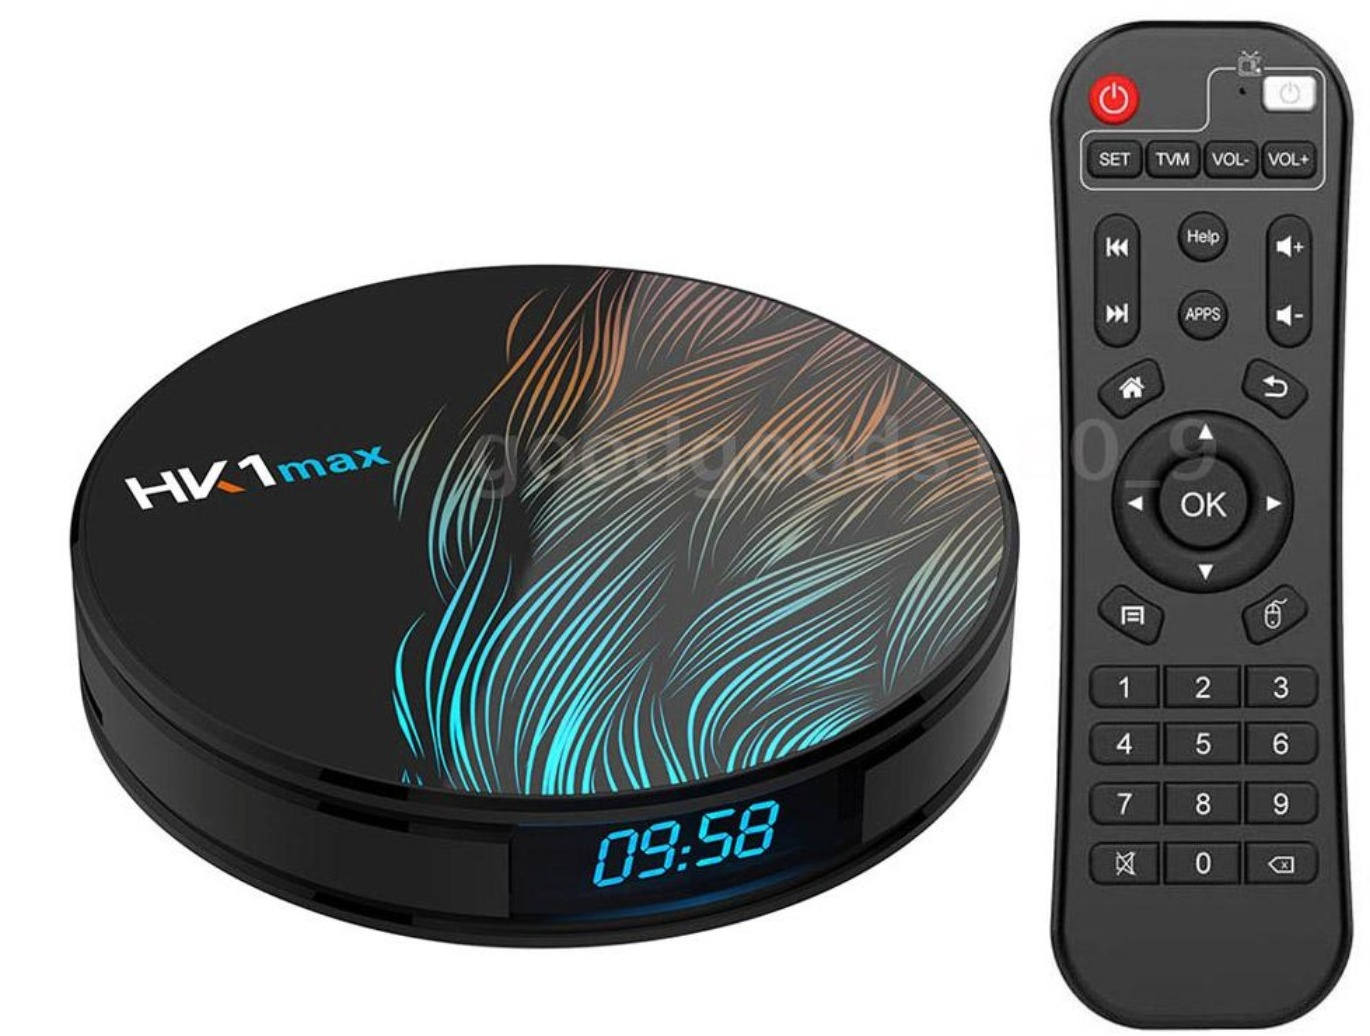 HK1MAX, lo smart tv box Android con 4K, dual band WiFi e 64 GB di ROM in offera a 42 euro